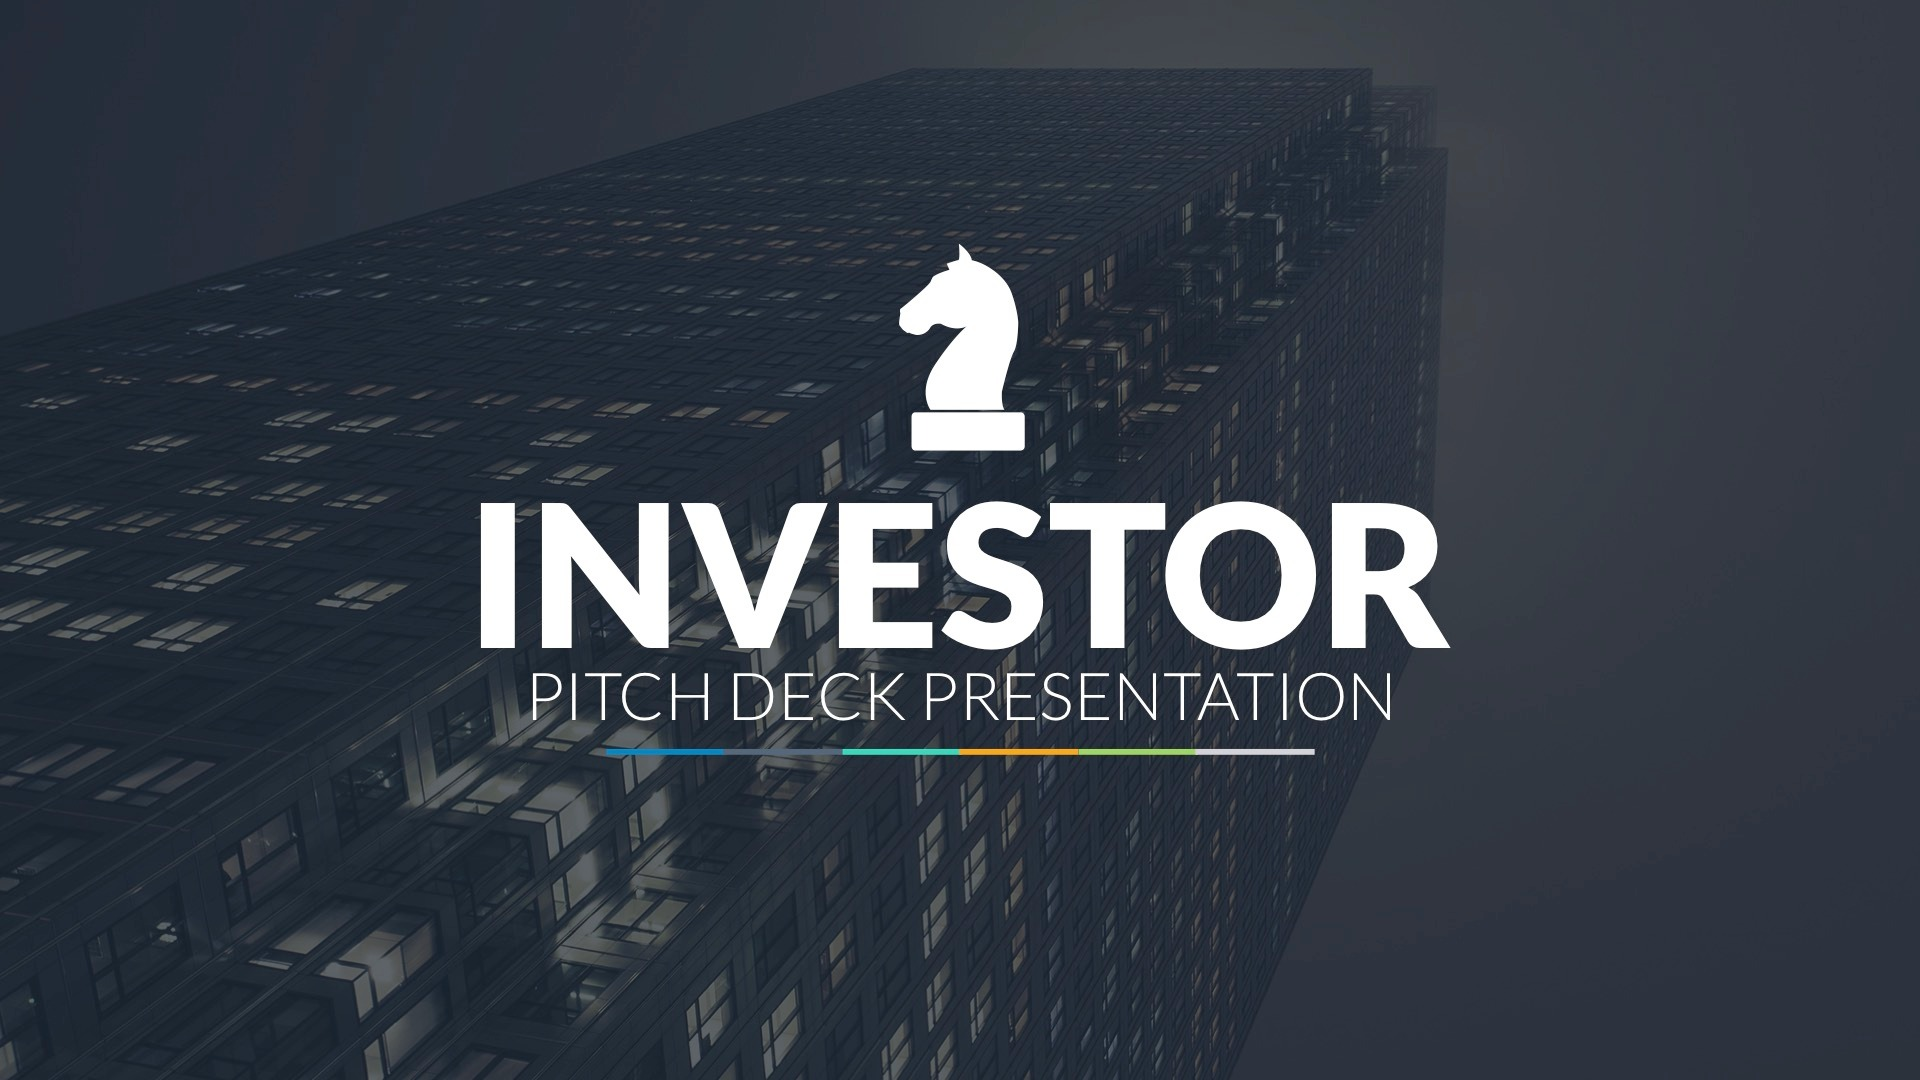 Investor pitch deck powerpoint template by louistwelve design powerpoint templates previewsslide001g toneelgroepblik Gallery